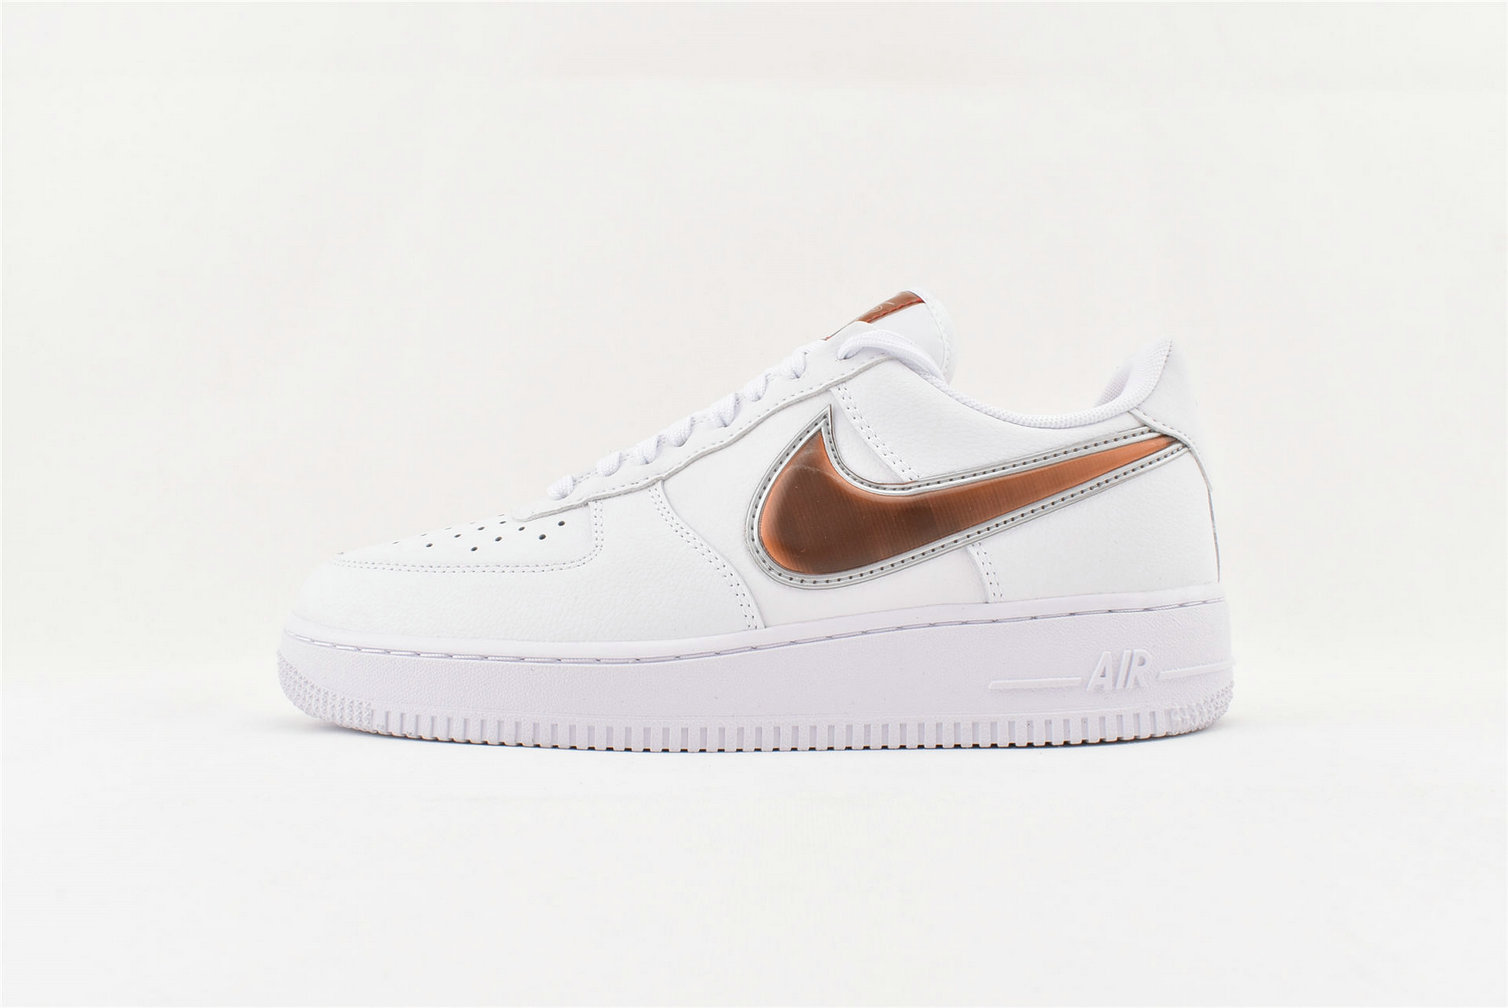 Where To Buy Cheap Nike Air Force 1 07 LV8 3 White Court Purple Infrared 23 CI6387-171